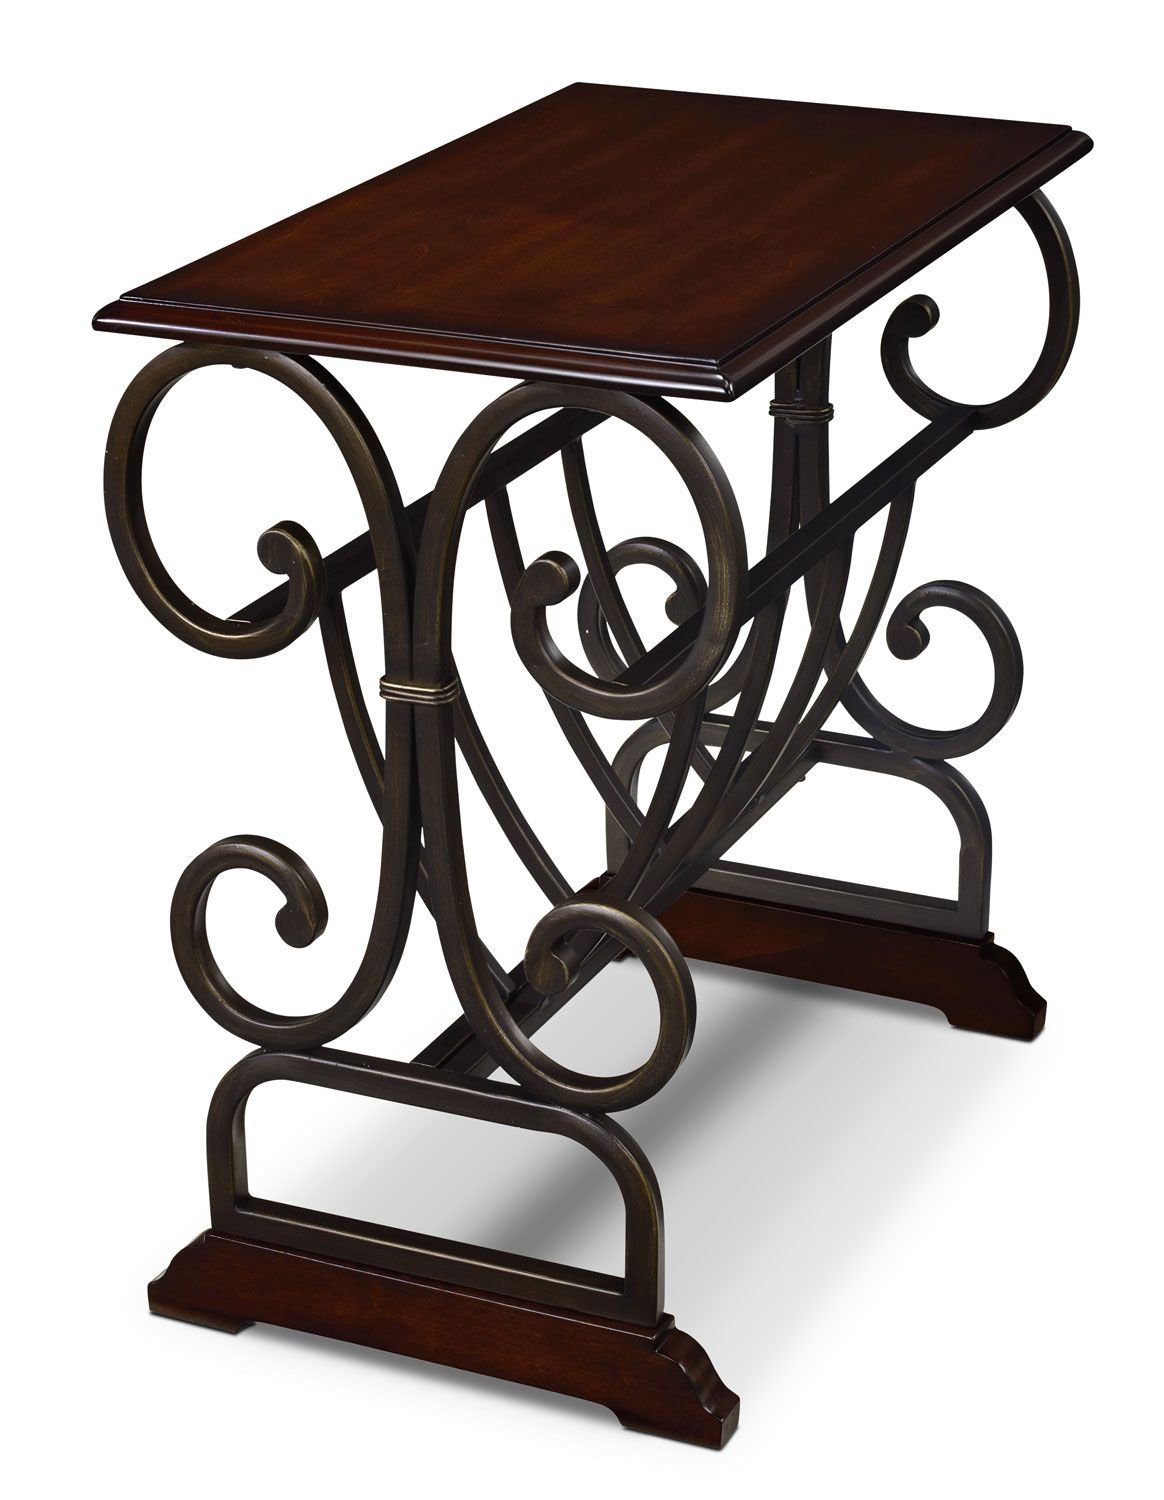 gander accent table with magazine rack brown cherry the brick cherrytable appoint avec armature metal brun cerisier hampton bay outdoor furniture skinny end ikea tall side drawers